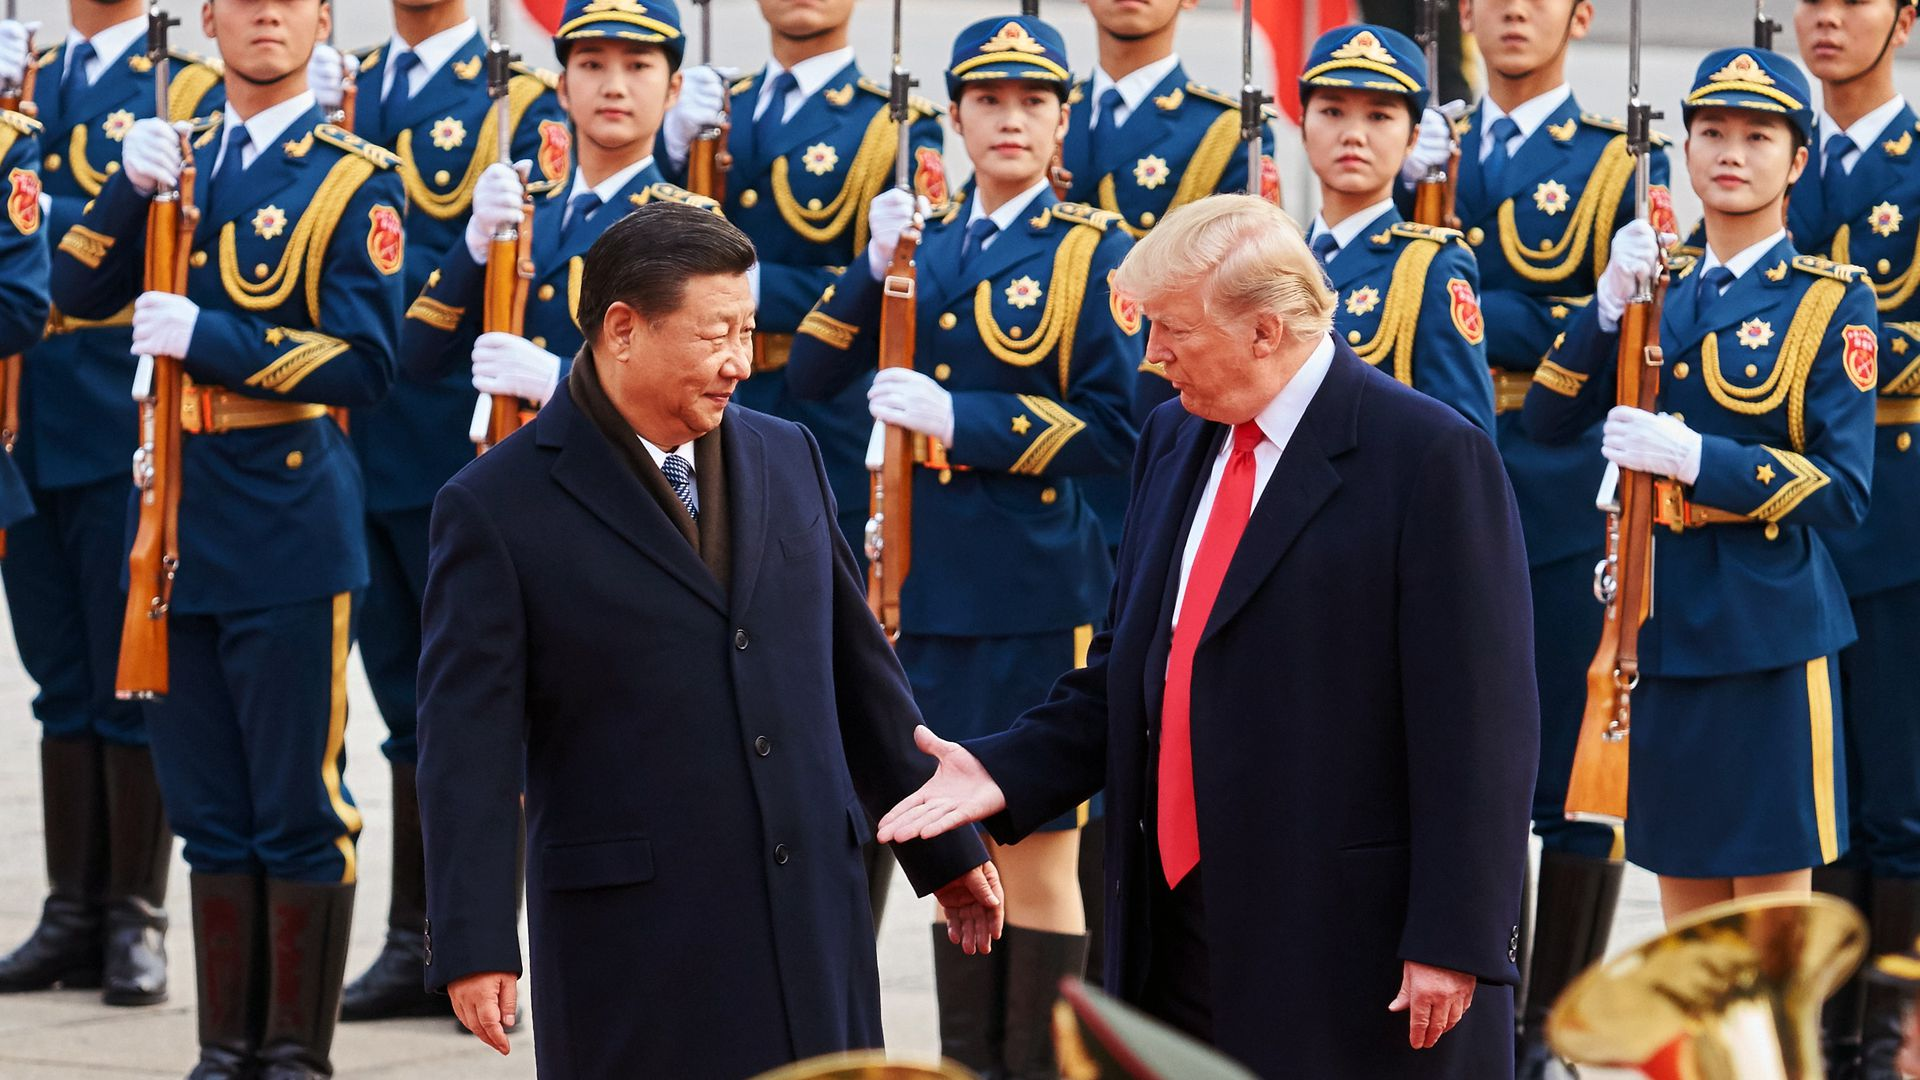 China's President Xi Jinping and US President Donald Trump shaking hands